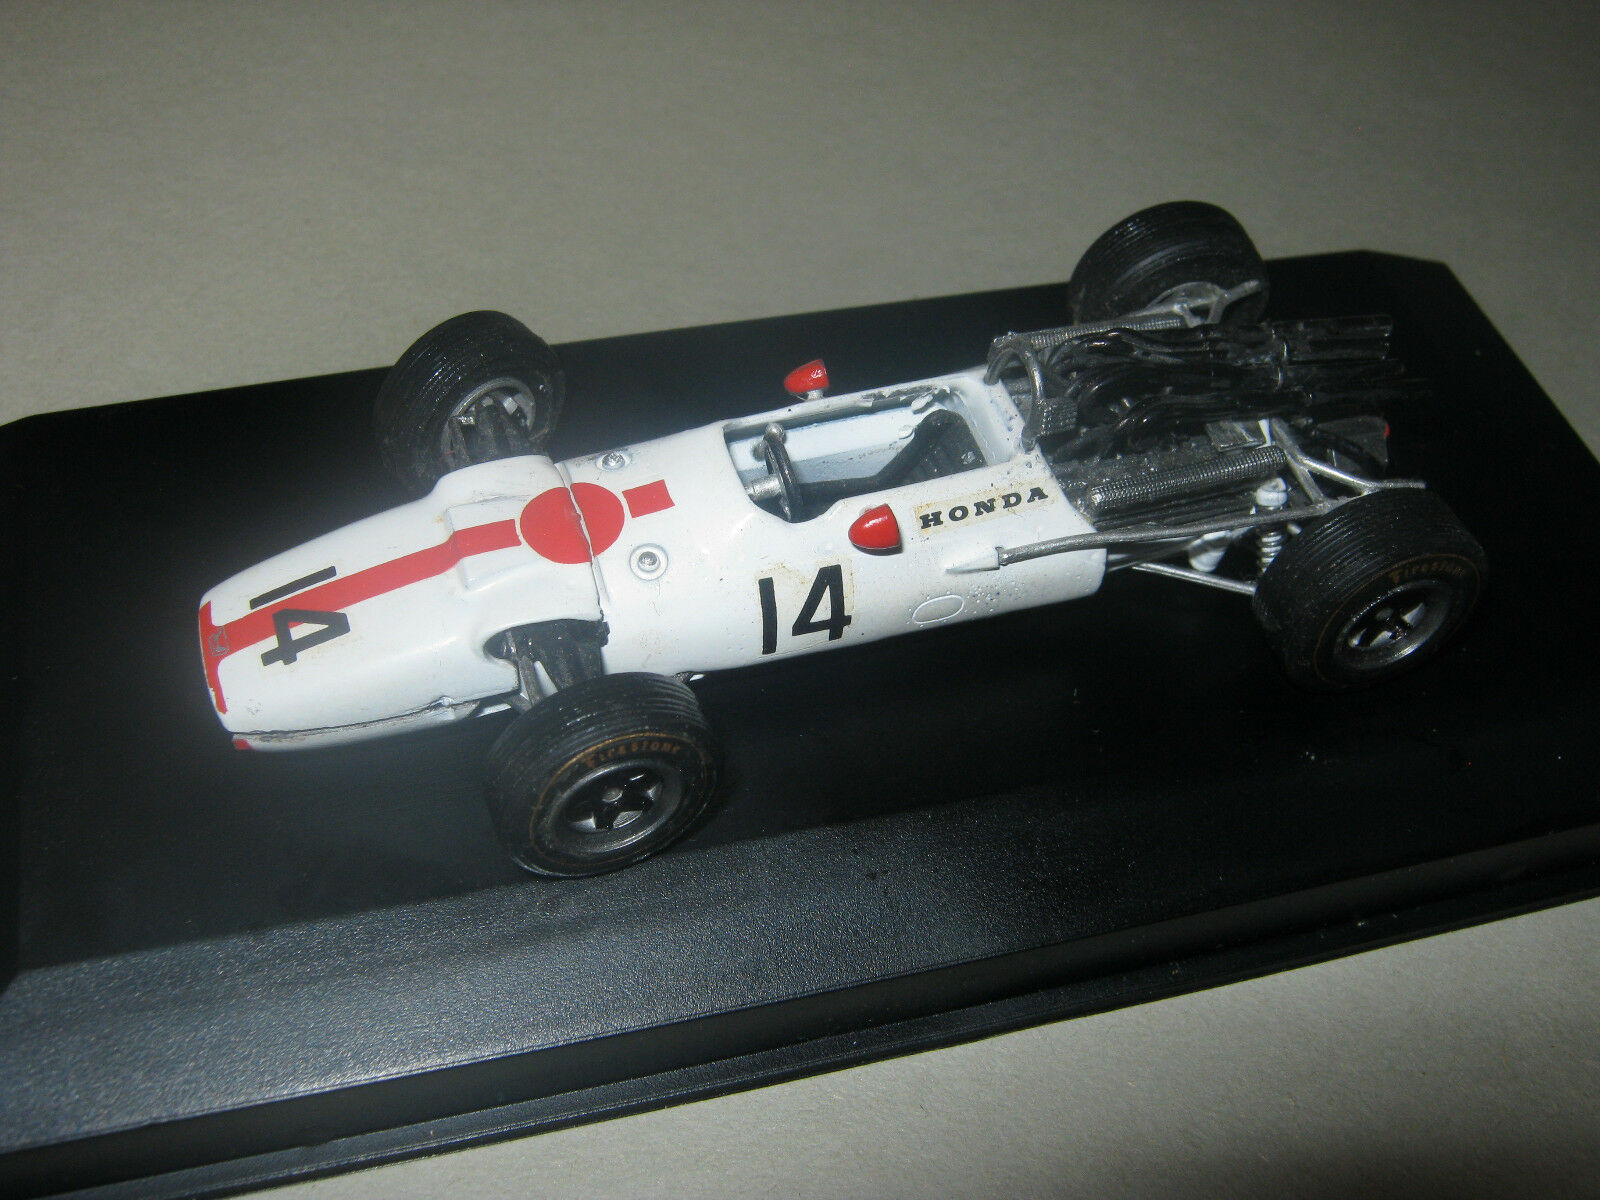 1 43 HONDA ra300 J. Surtees 1967 scale racing cars HANDBUILT dans Showcase